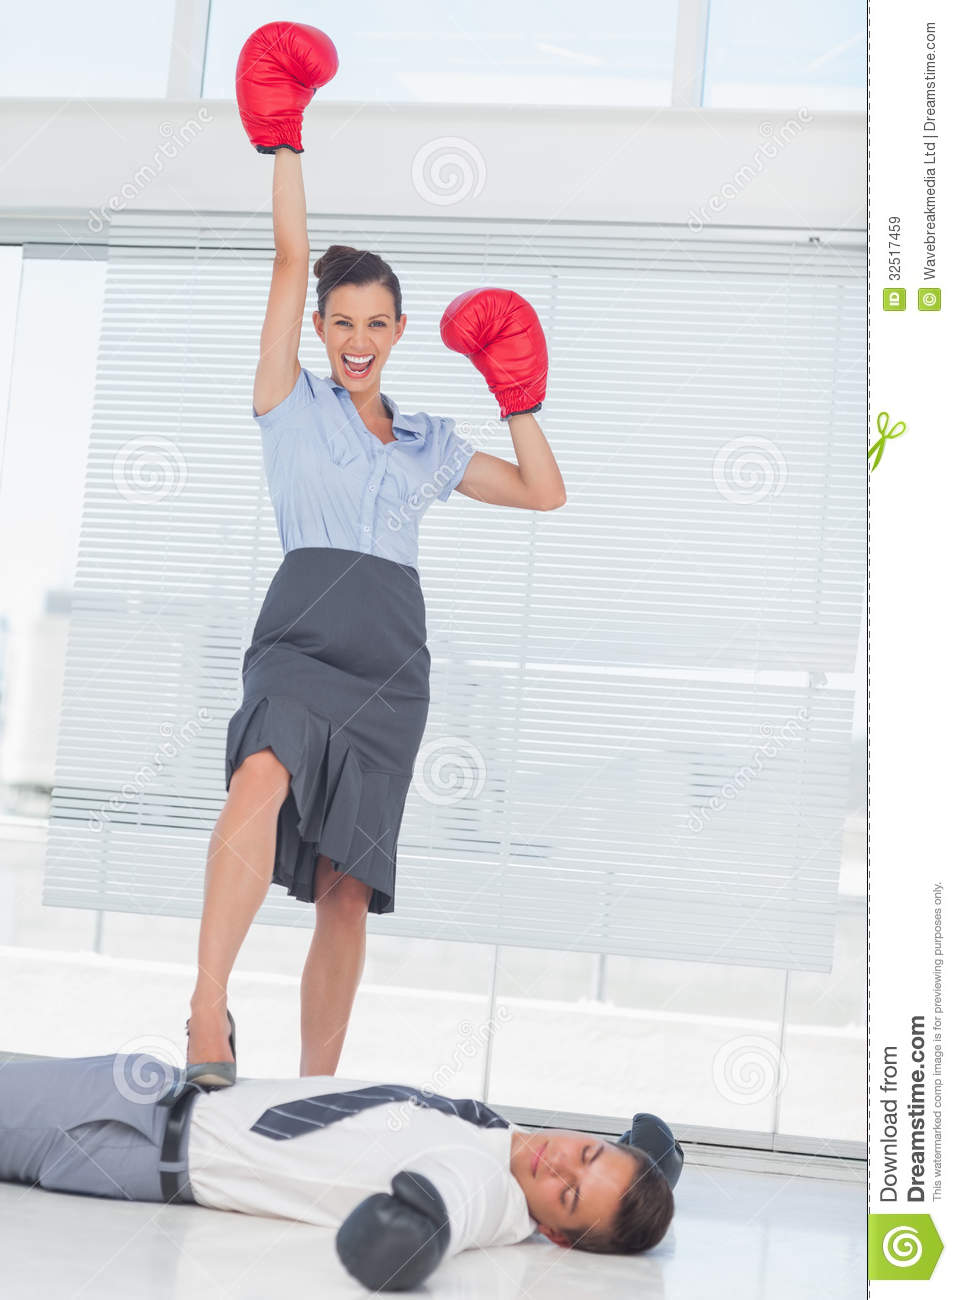 Businesswoman Standing On Defeated Businessman Wearing